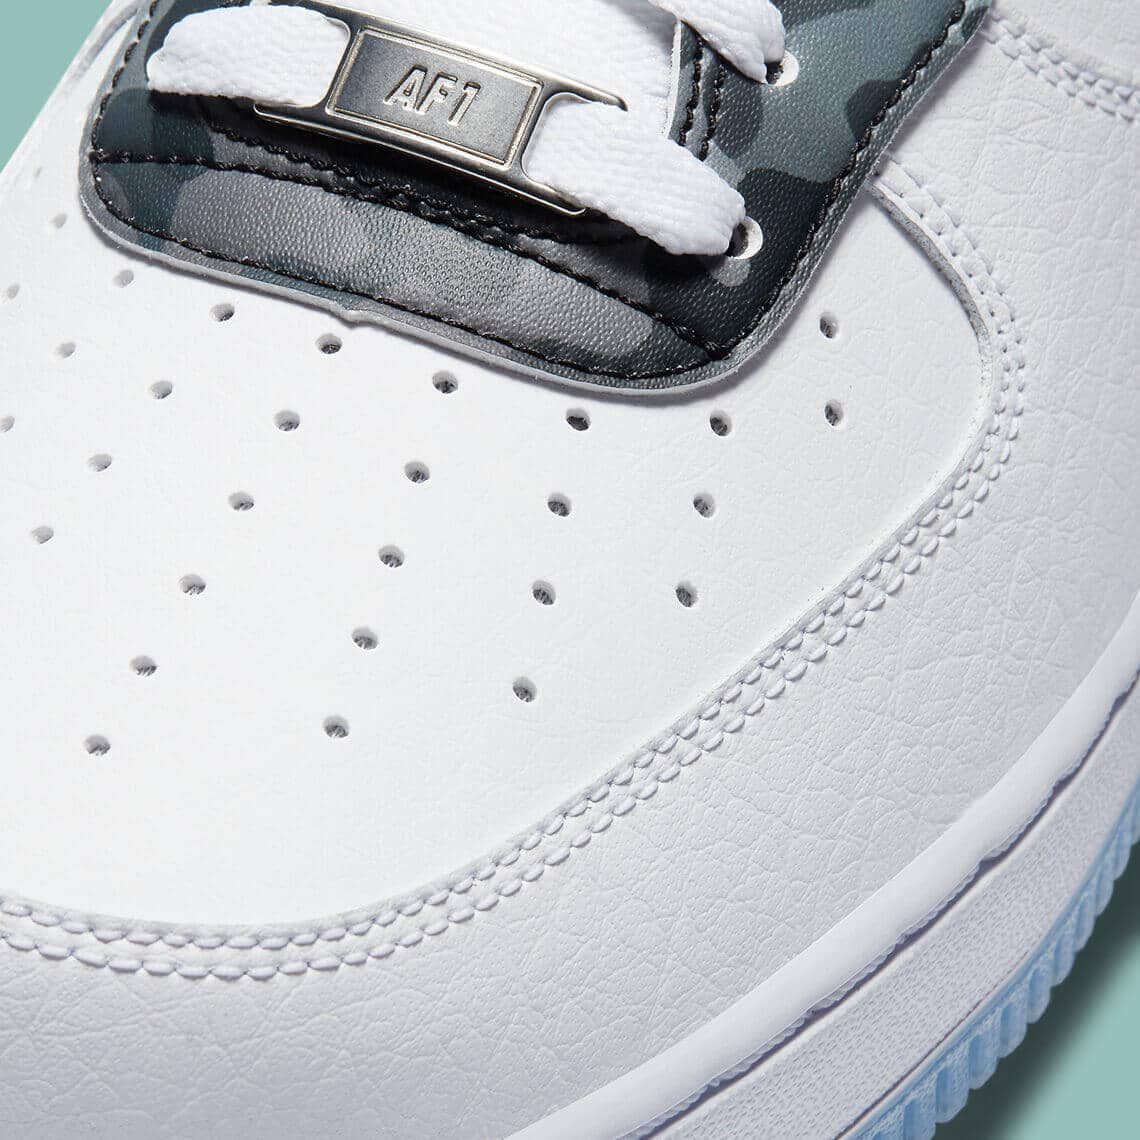 nike air force 1 low remix pack DB1997 100 8